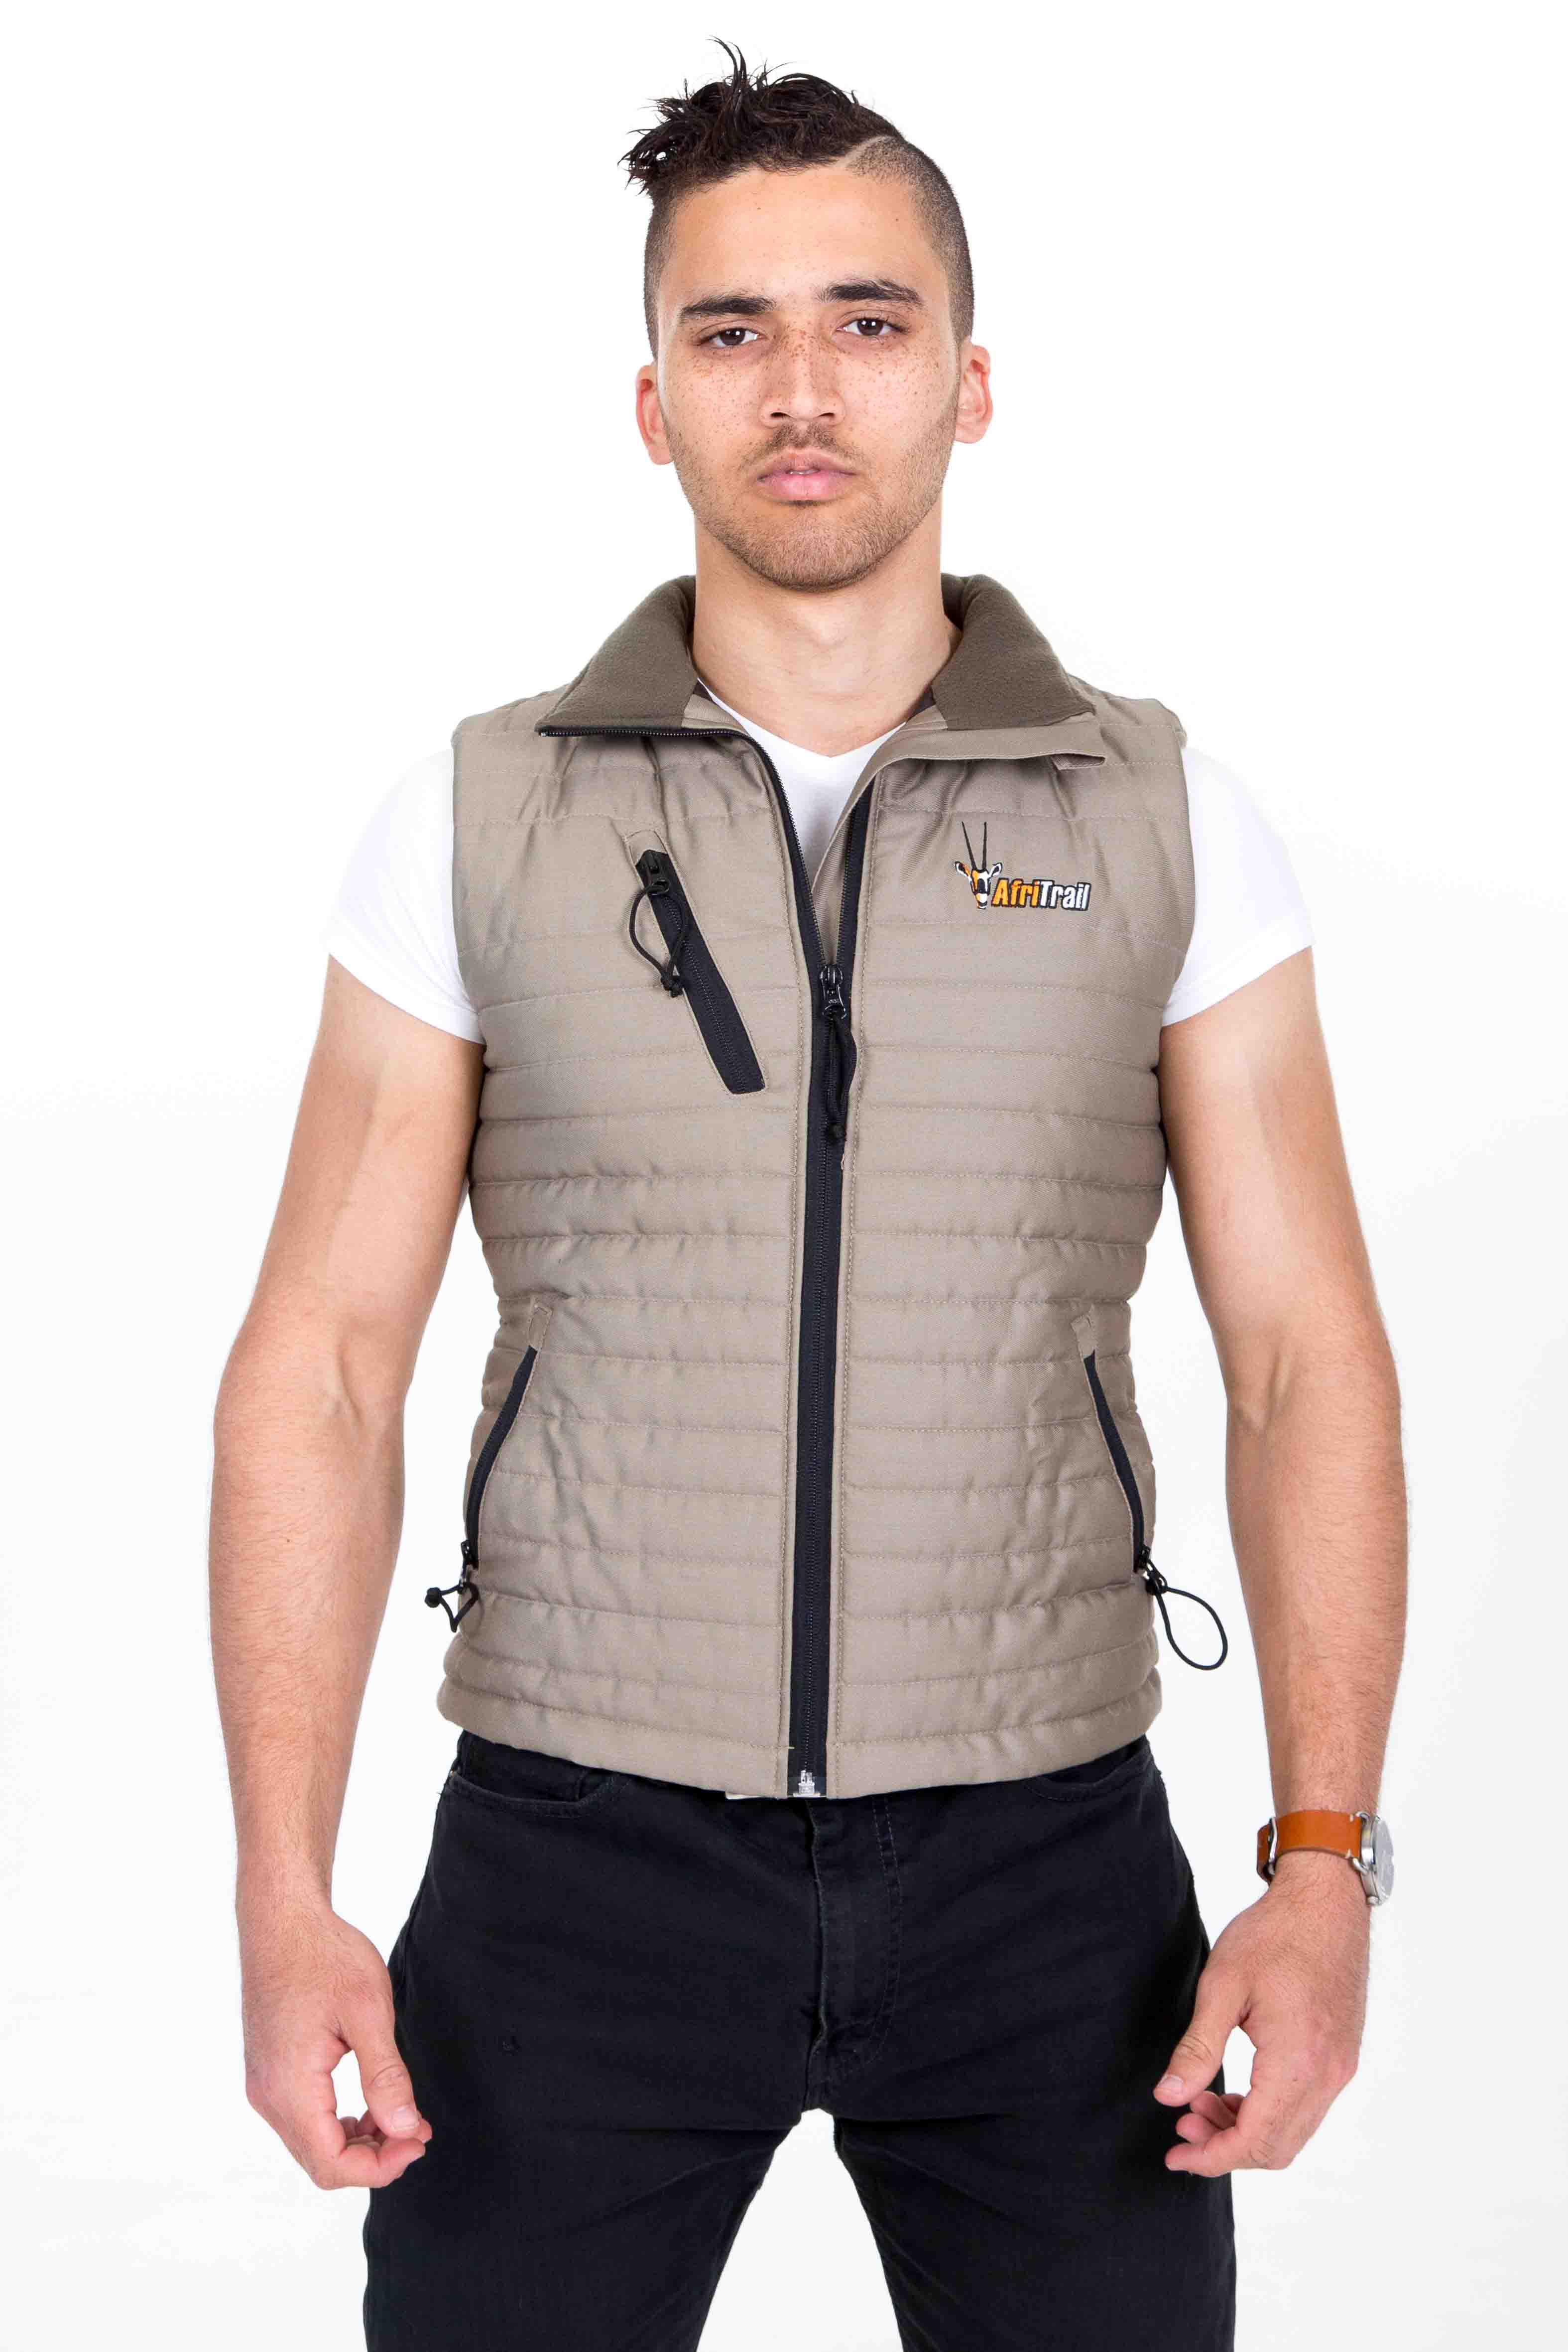 afritrail-pc-twill-men's-padded-vest